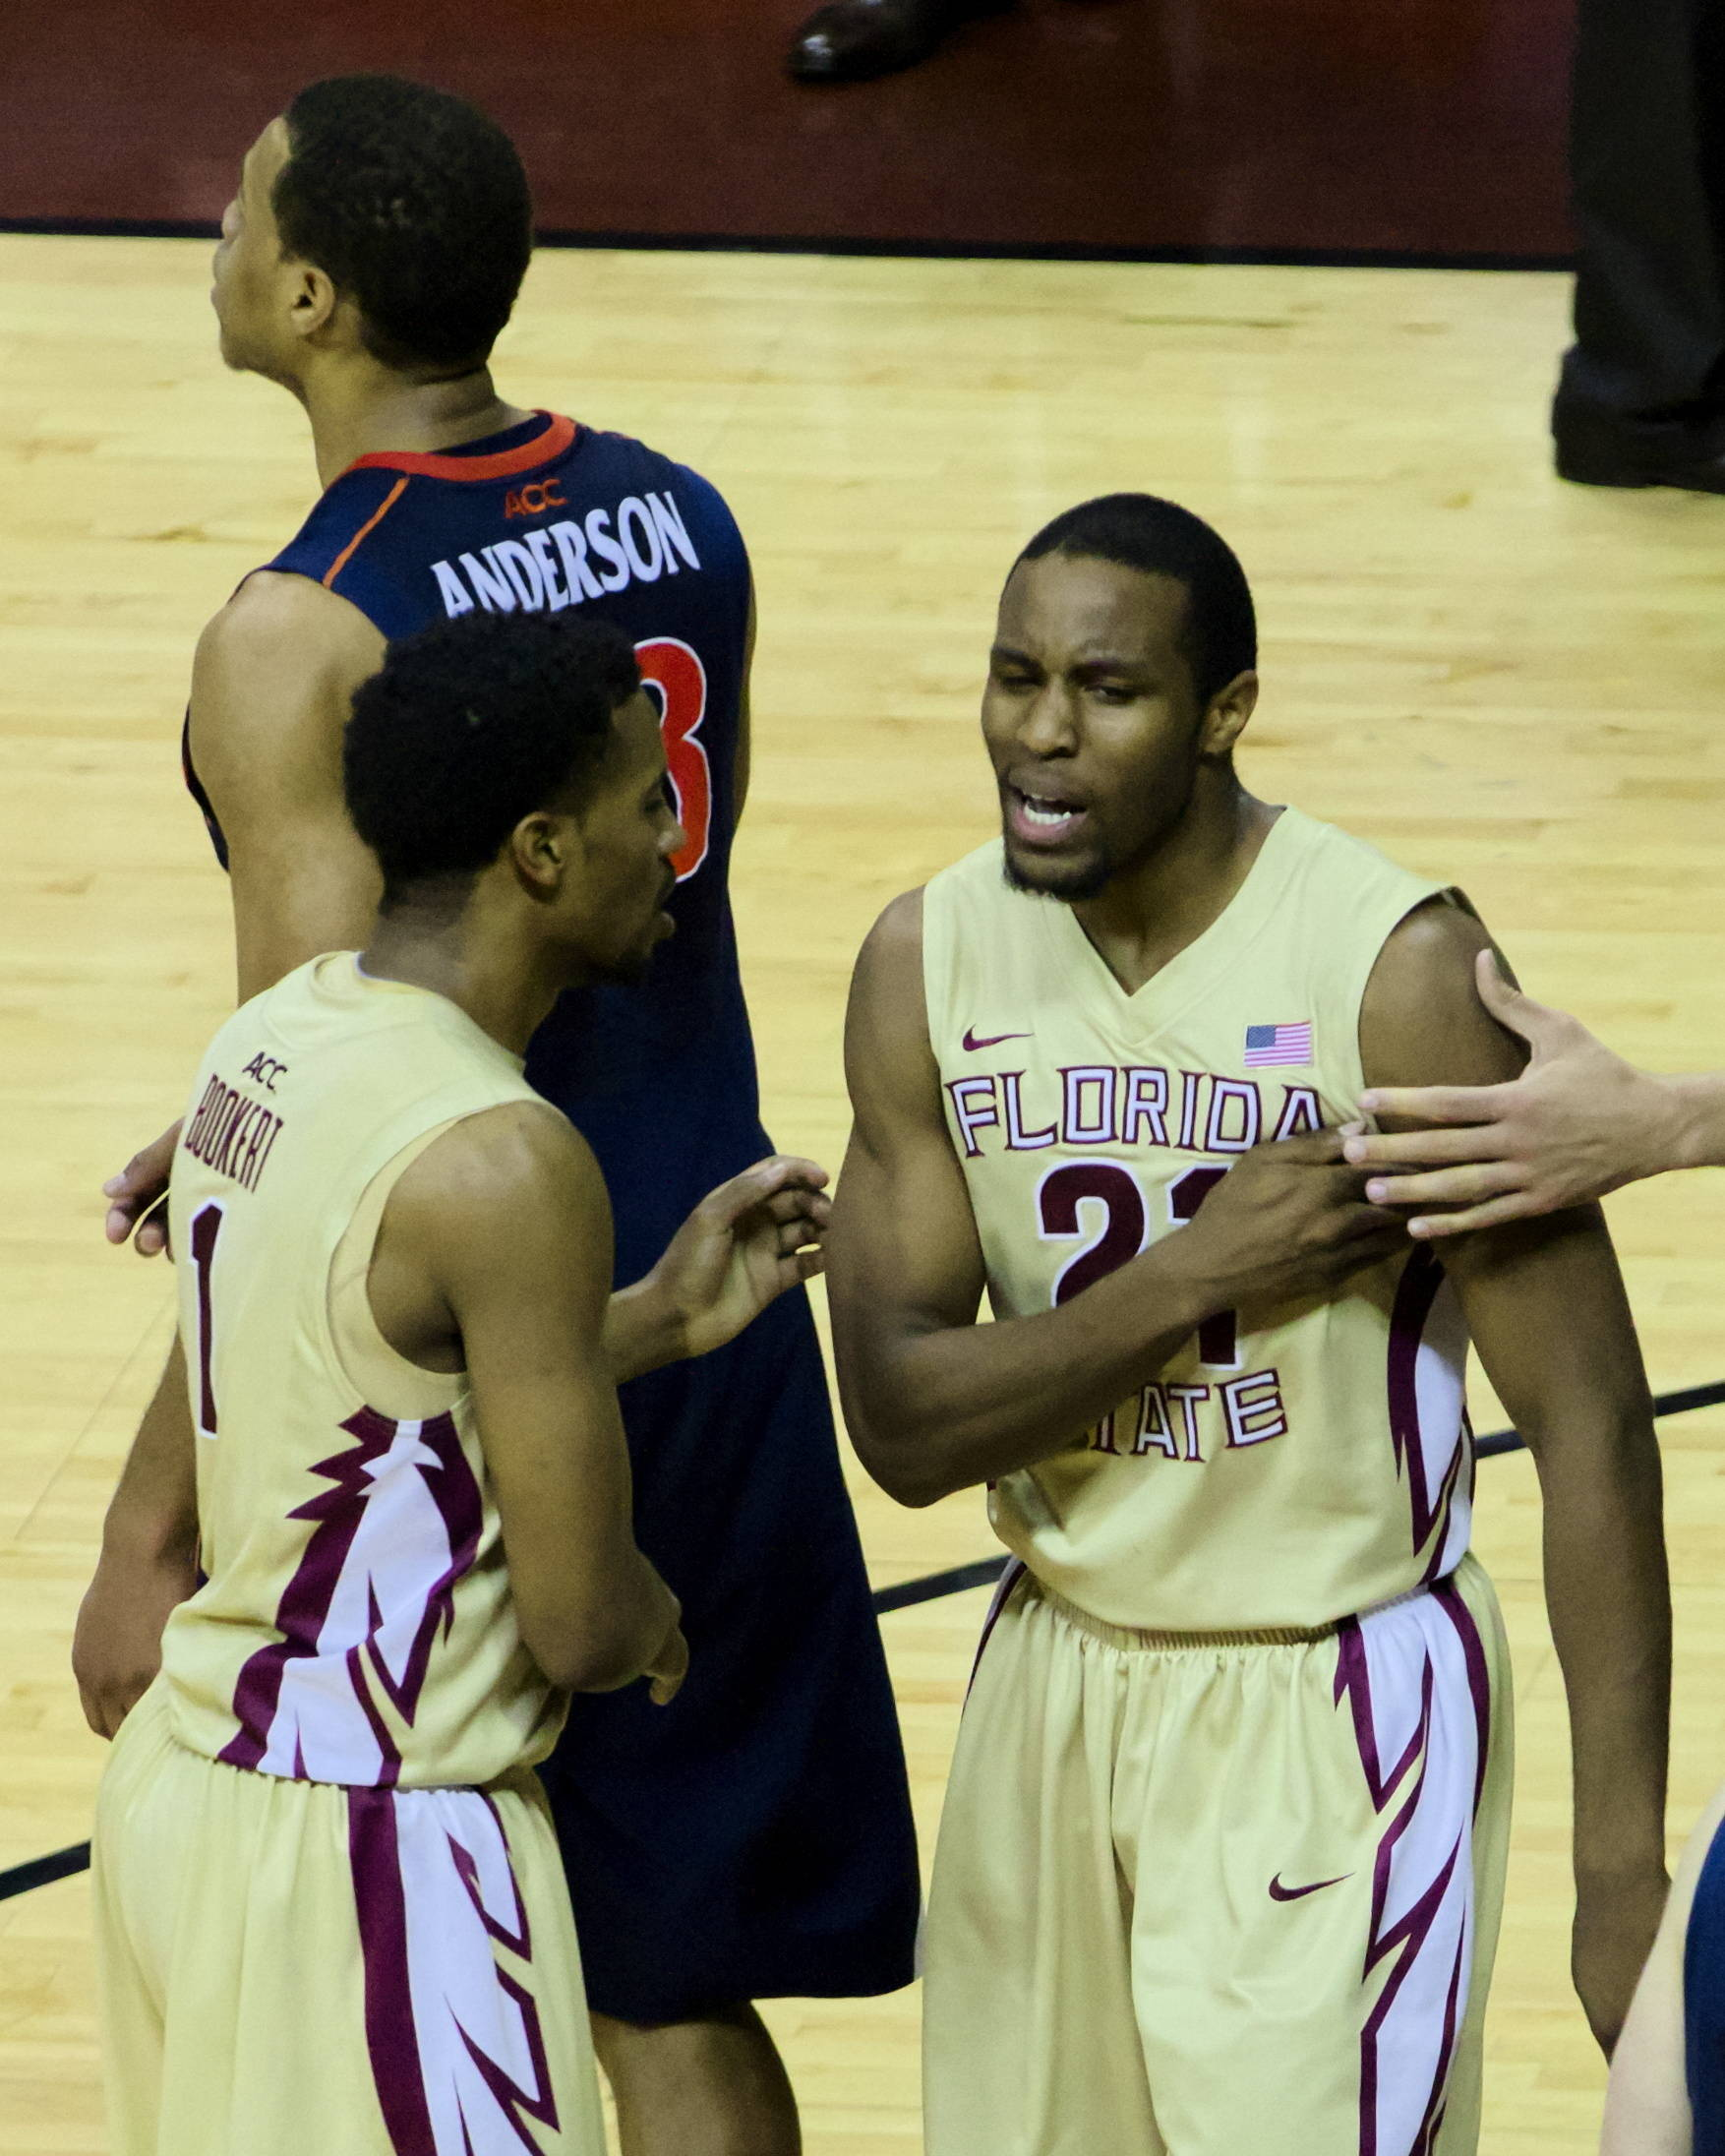 Michael Snear (21) with a chest pump after his game winning shot dropped in, FSU vs Virginia, 03/07/13. (Photo by Steve Musco)